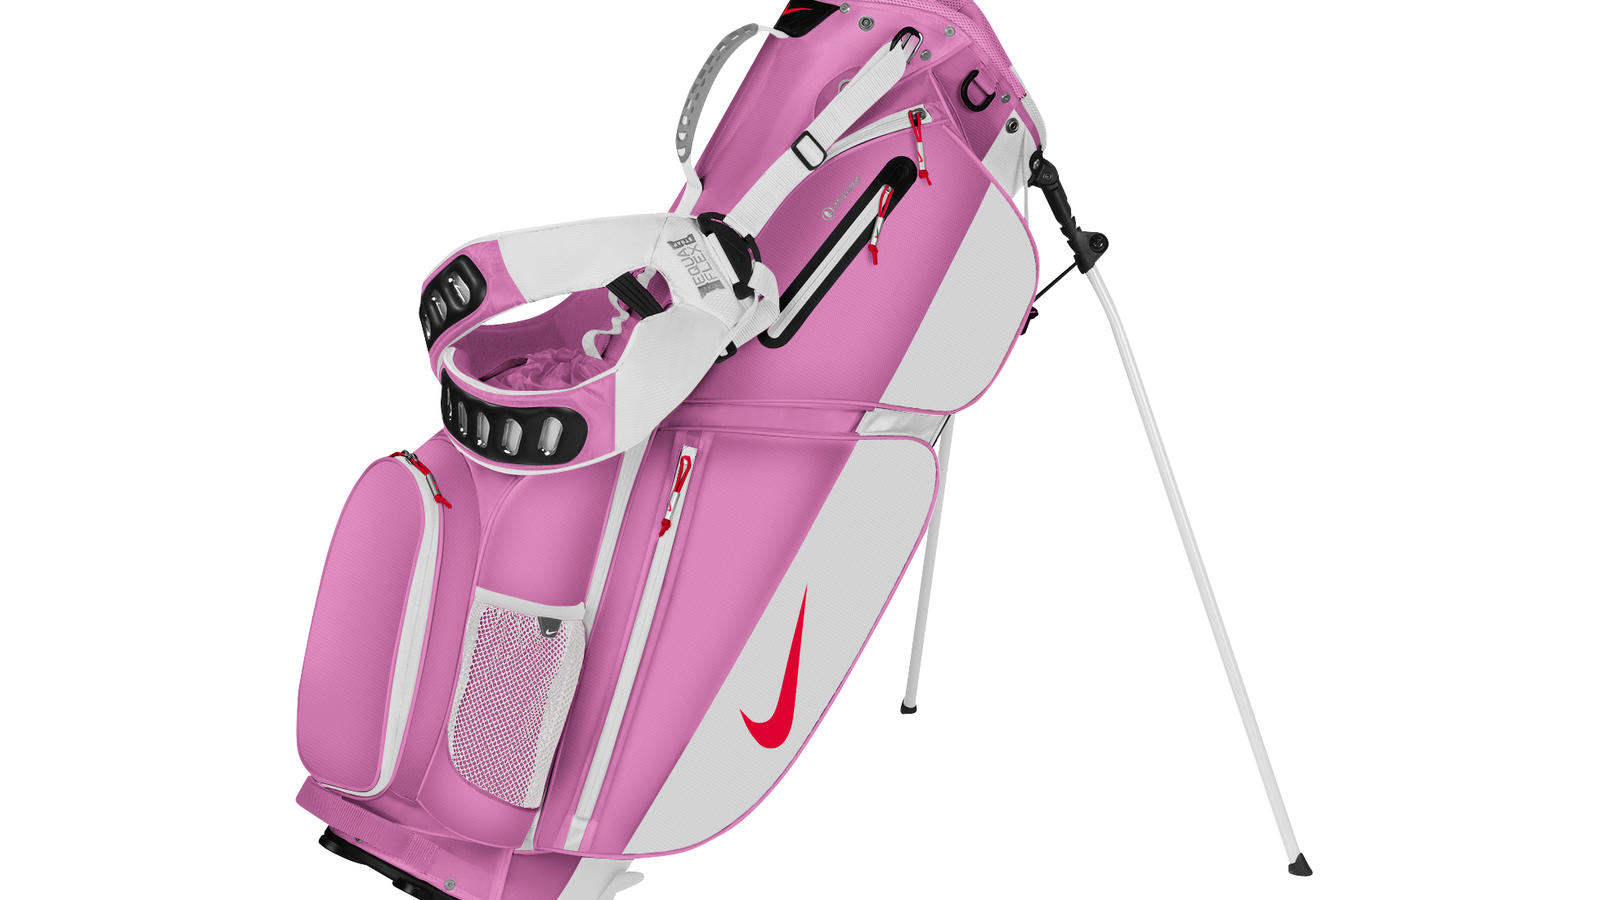 Agencia de viajes Exagerar Hostal  Nike Golf Introduces the Lightweight, Versatile Nike Air Sport ...